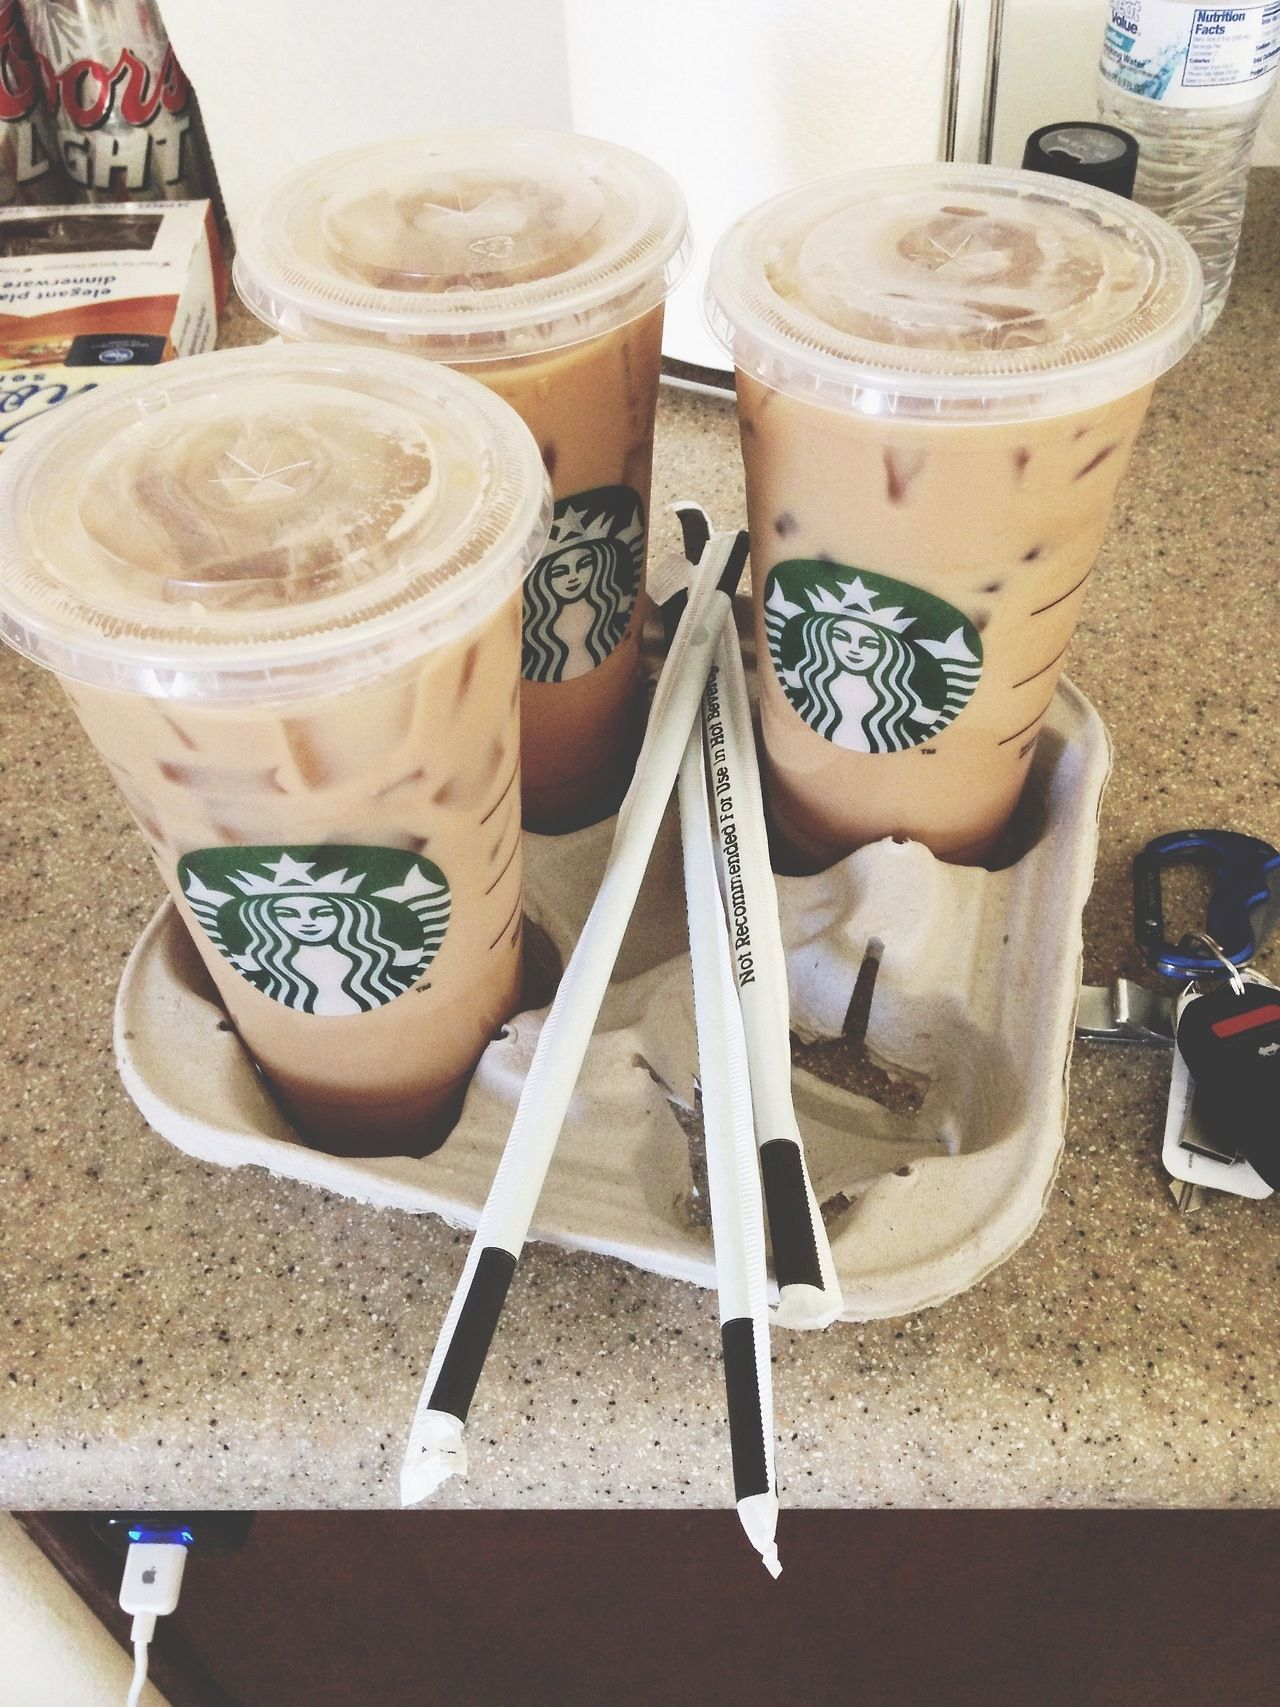 Can You Order A Box Of Iced Coffee At Starbucks